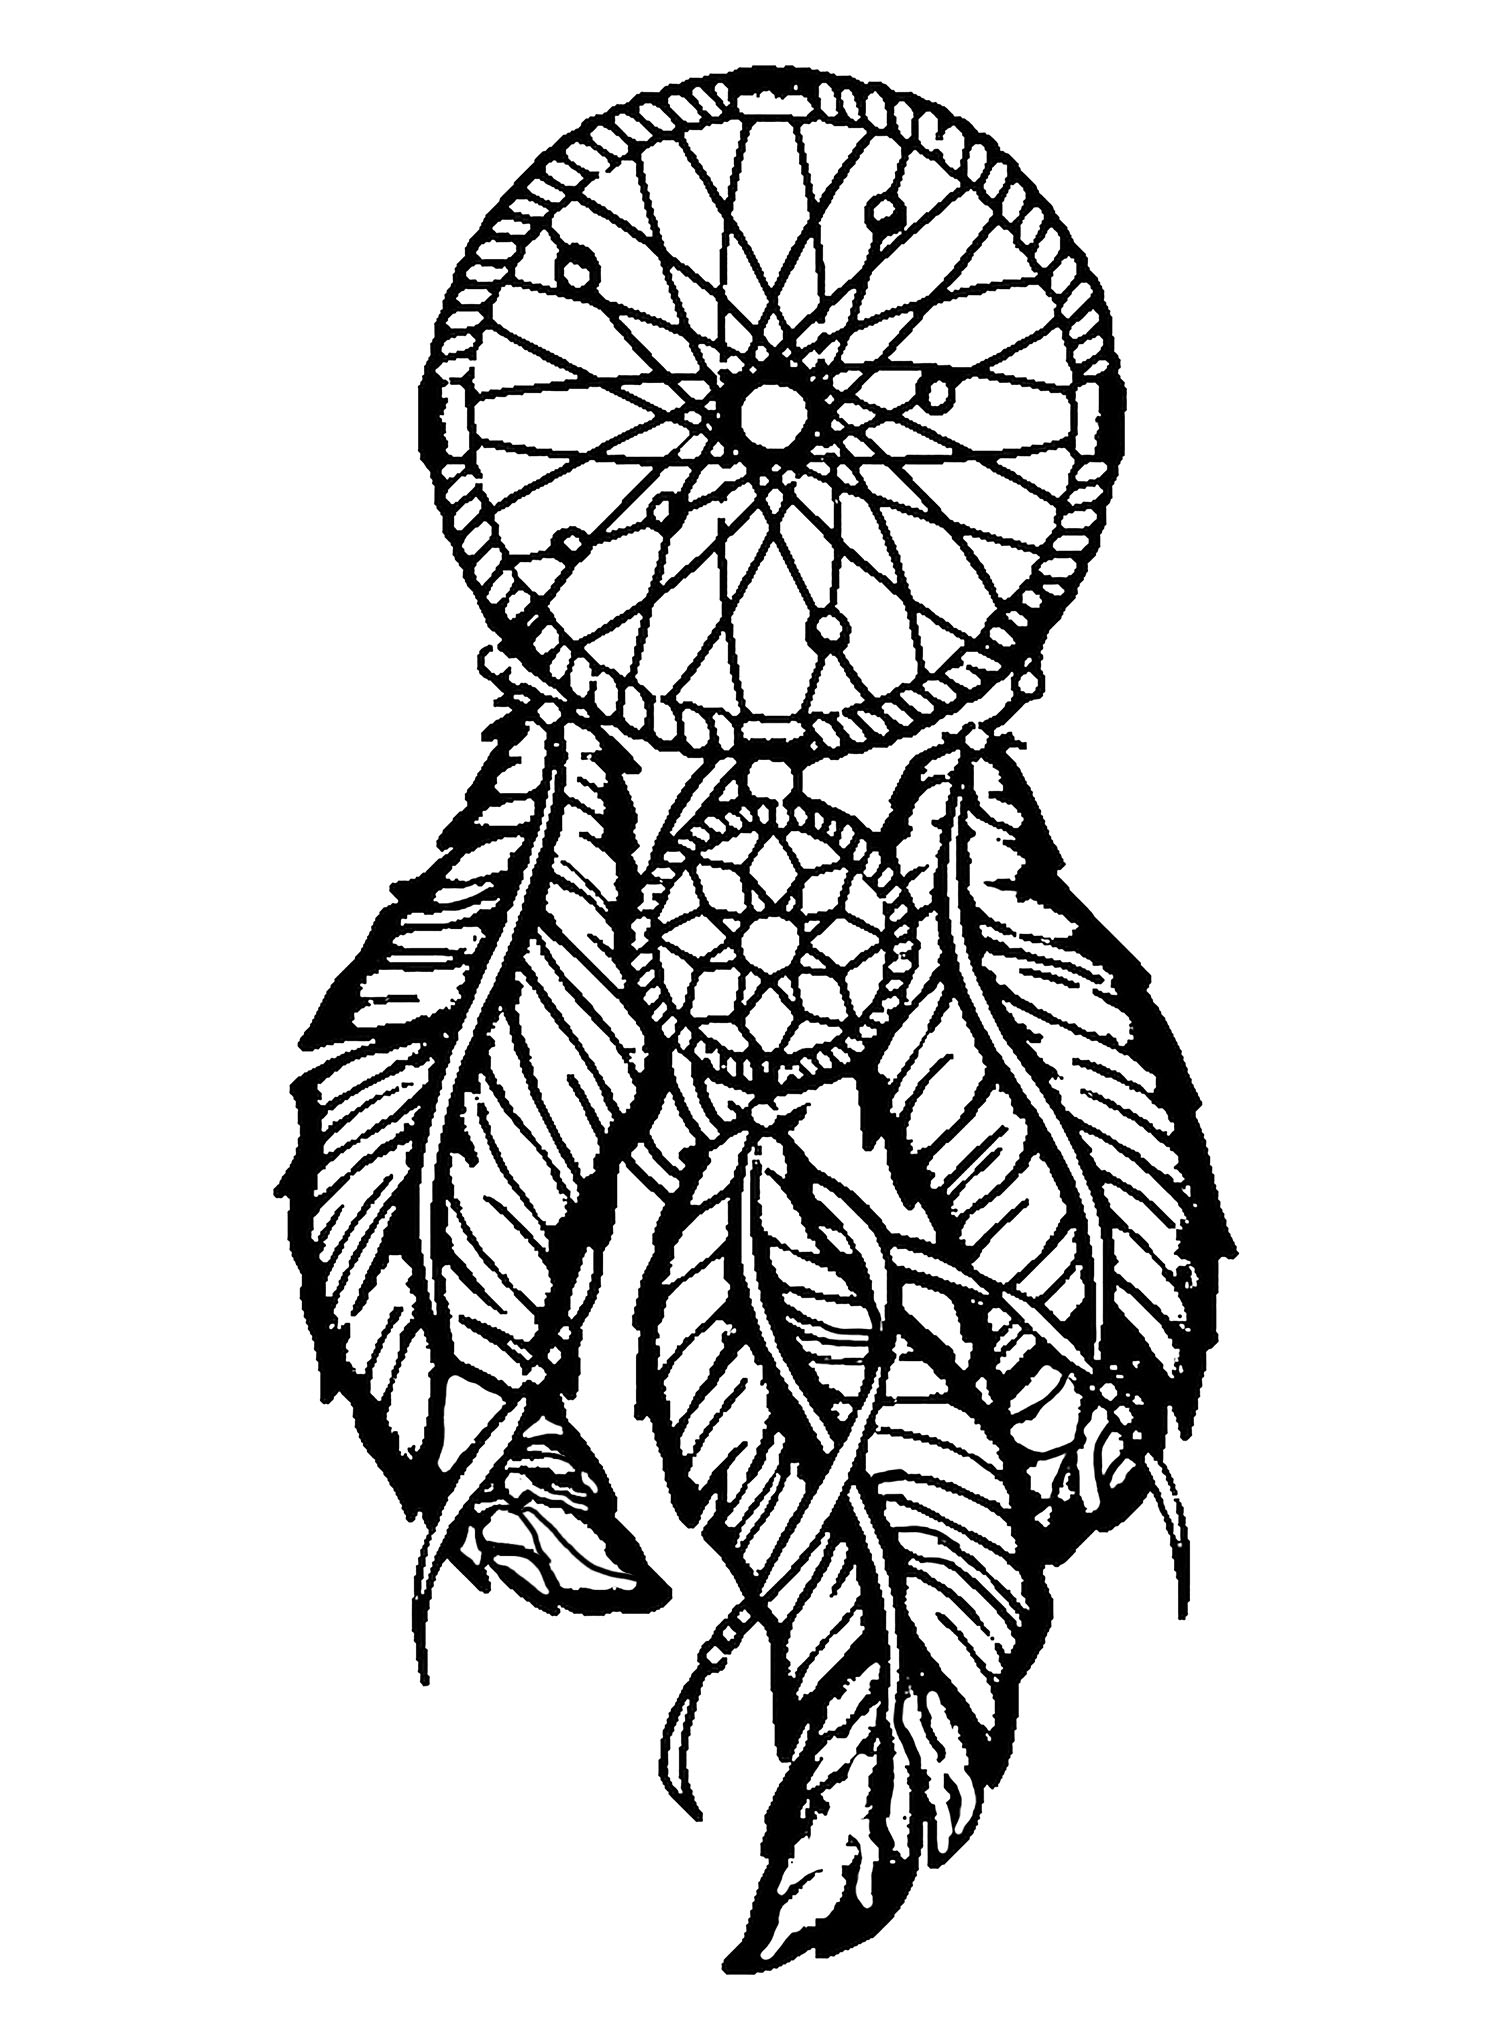 coloring images dream catcher coloring pages best coloring pages for kids images coloring